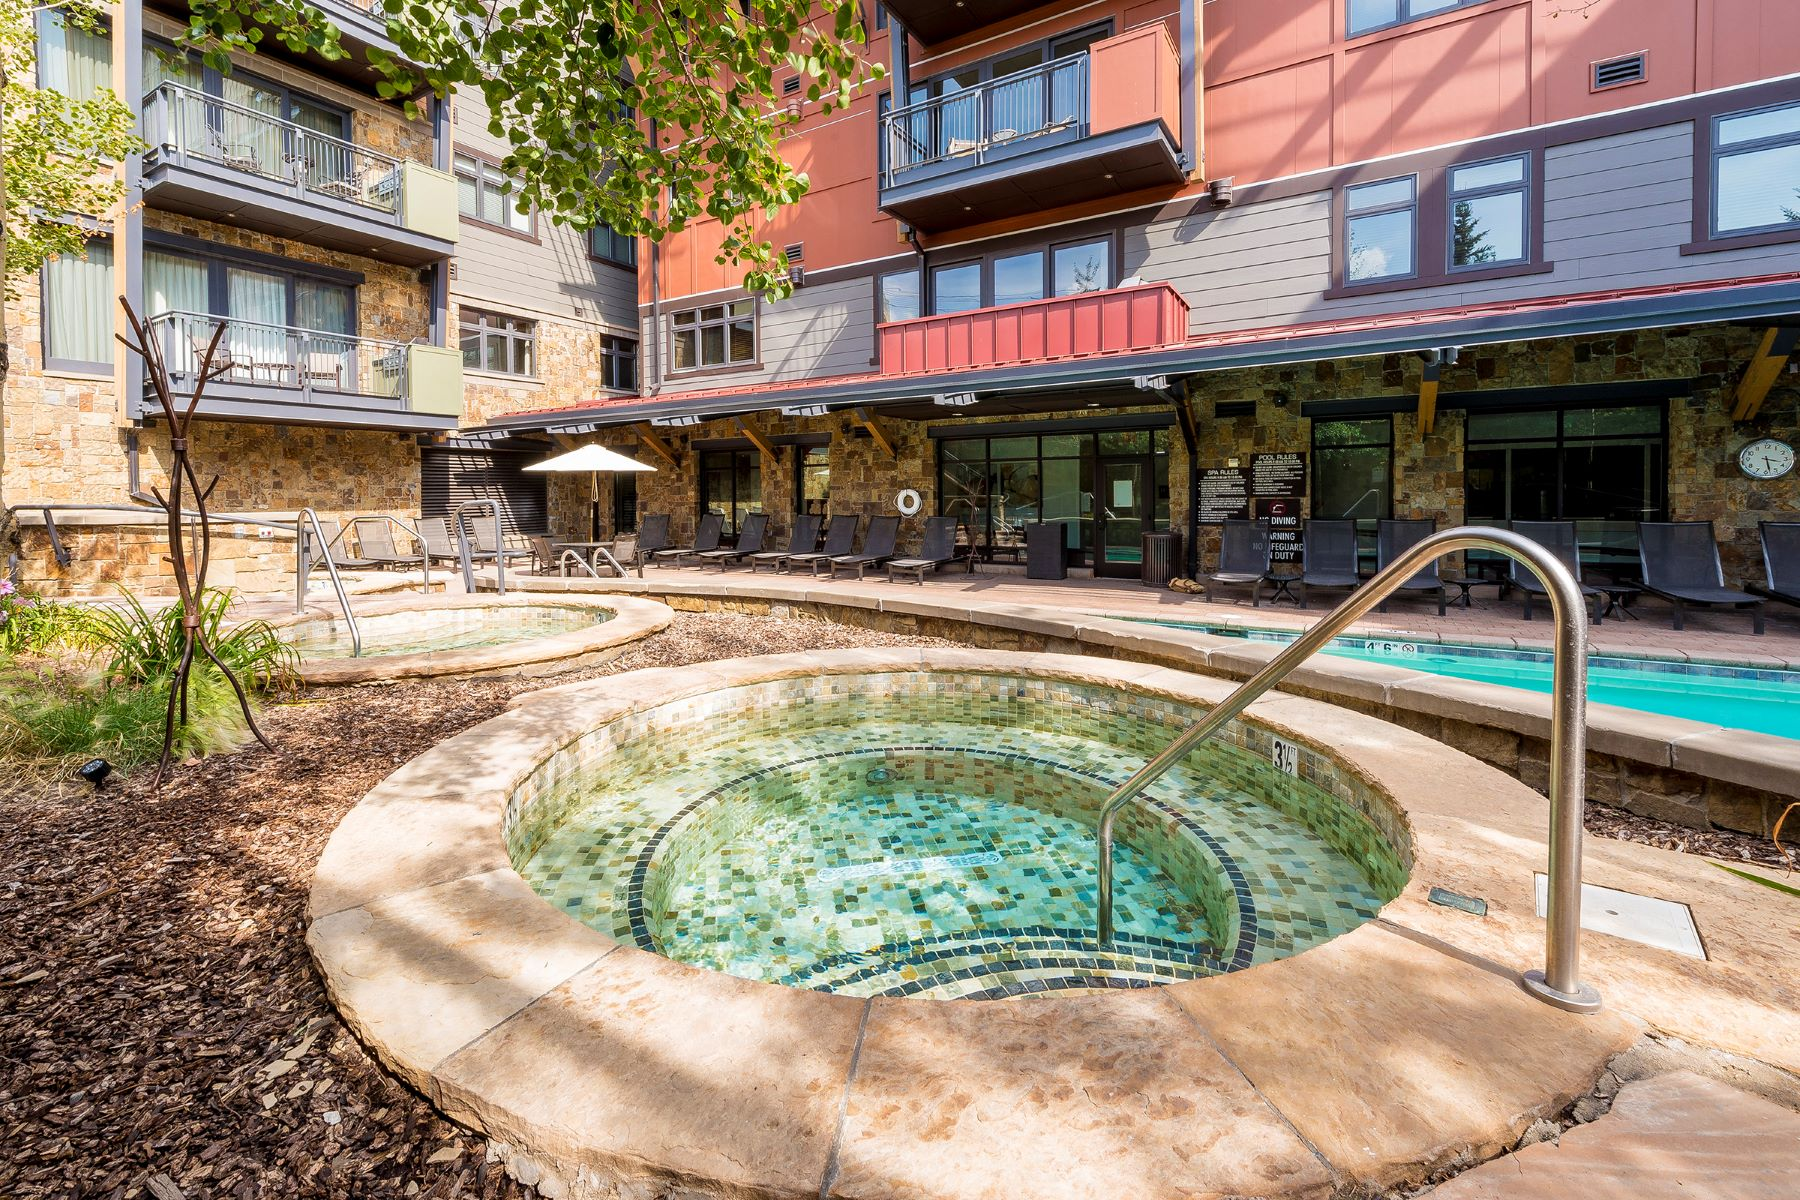 Additional photo for property listing at One Steamboat Place   Steamboat Springs, CO 2250 Apres Ski Way #R516 Steamboat Springs, Colorado 80487 United States